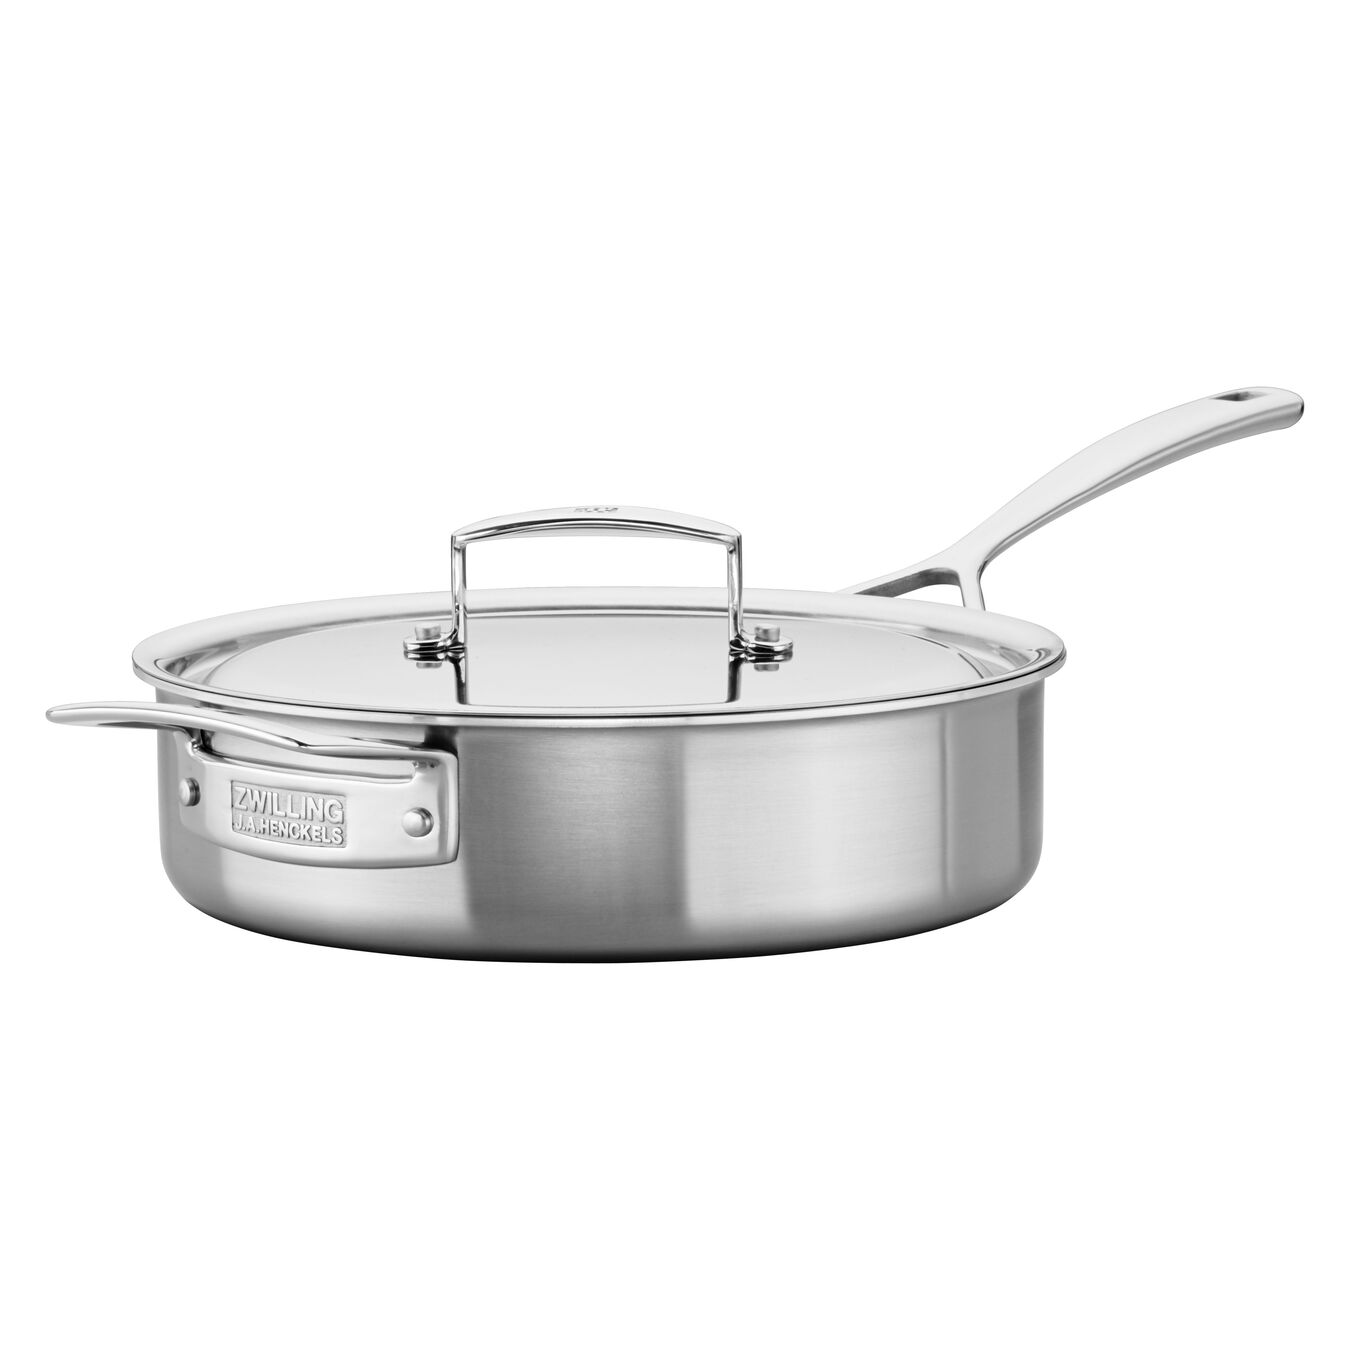 5 Ply, 18/10 Stainless Steel, 9.5-inch, Saute pan with lid,,large 3